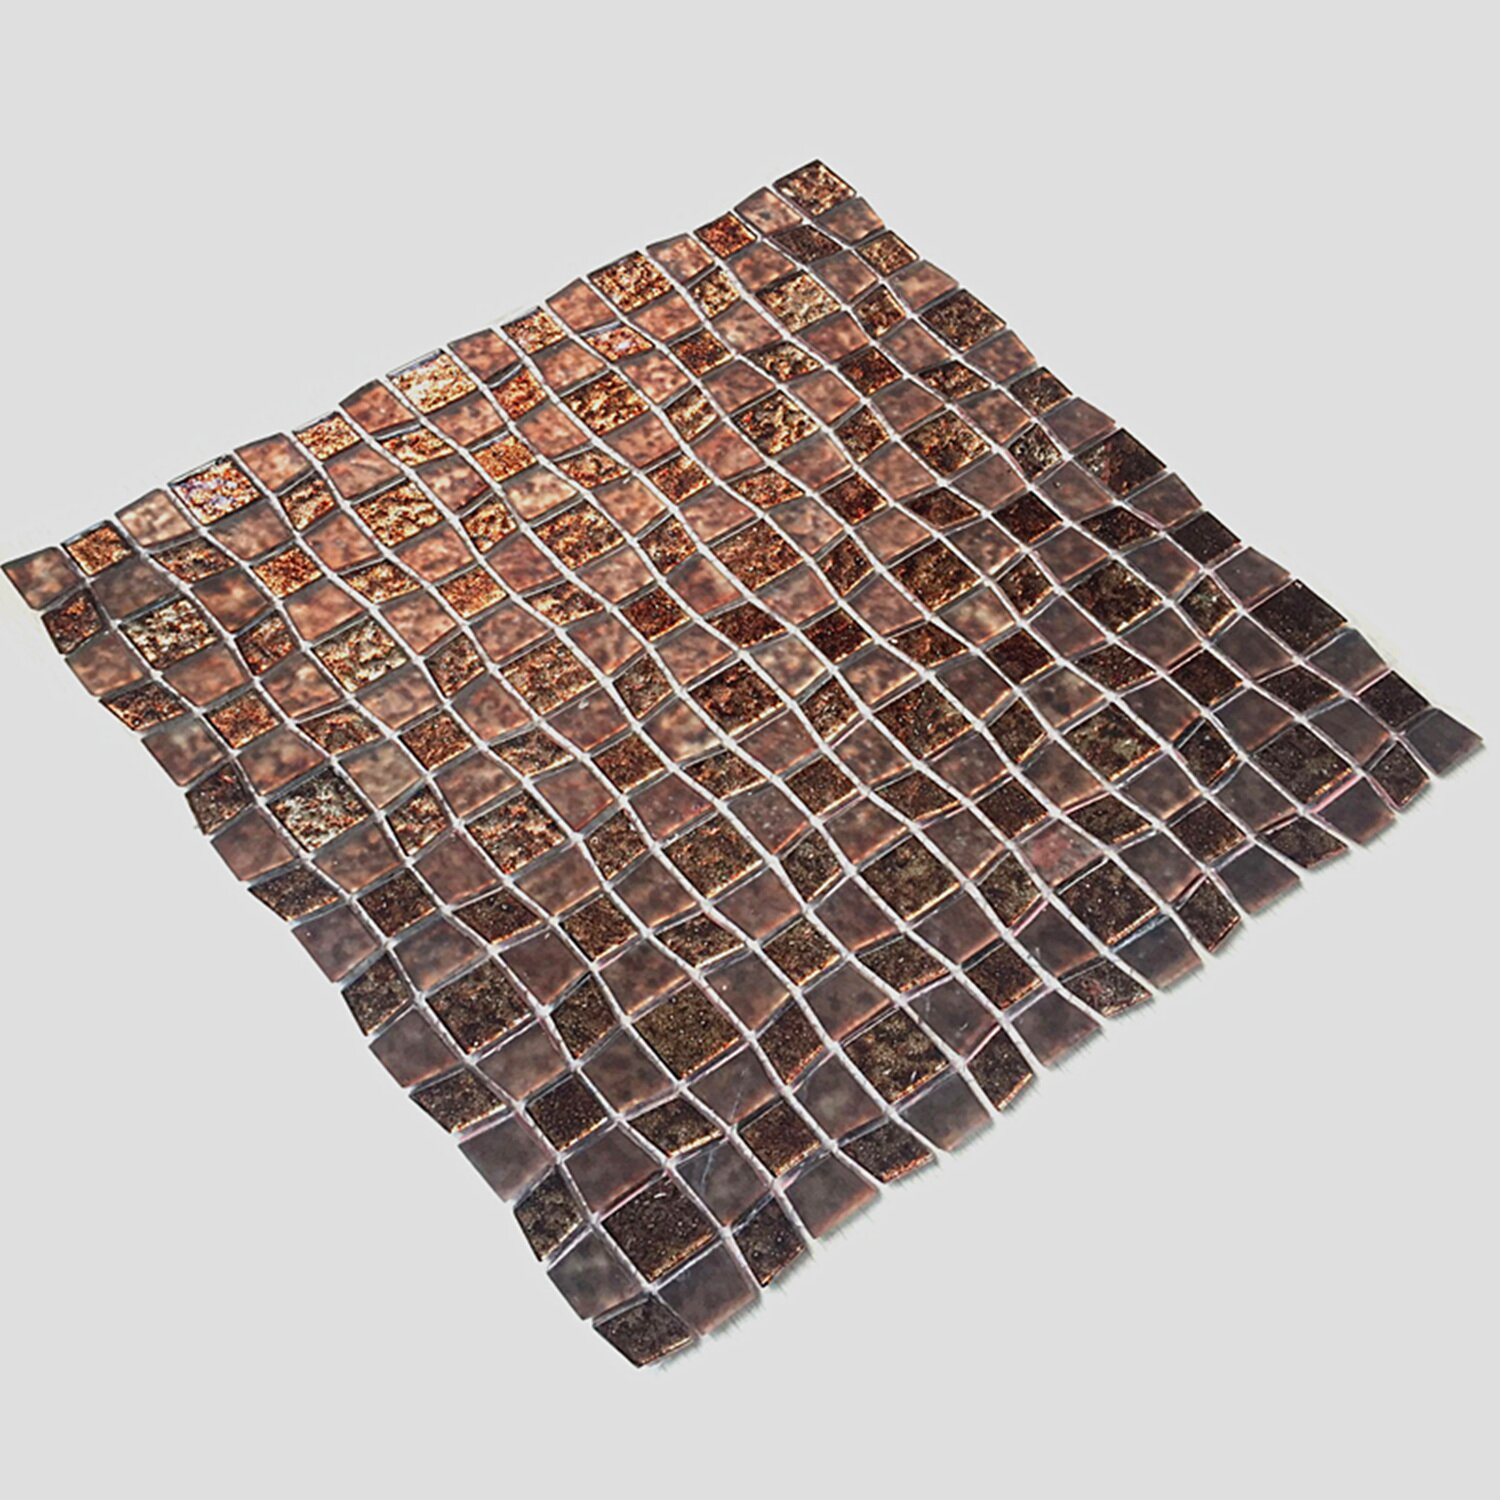 12 x 12 glass peel and stick mosaic tile in brown wayfair. Black Bedroom Furniture Sets. Home Design Ideas